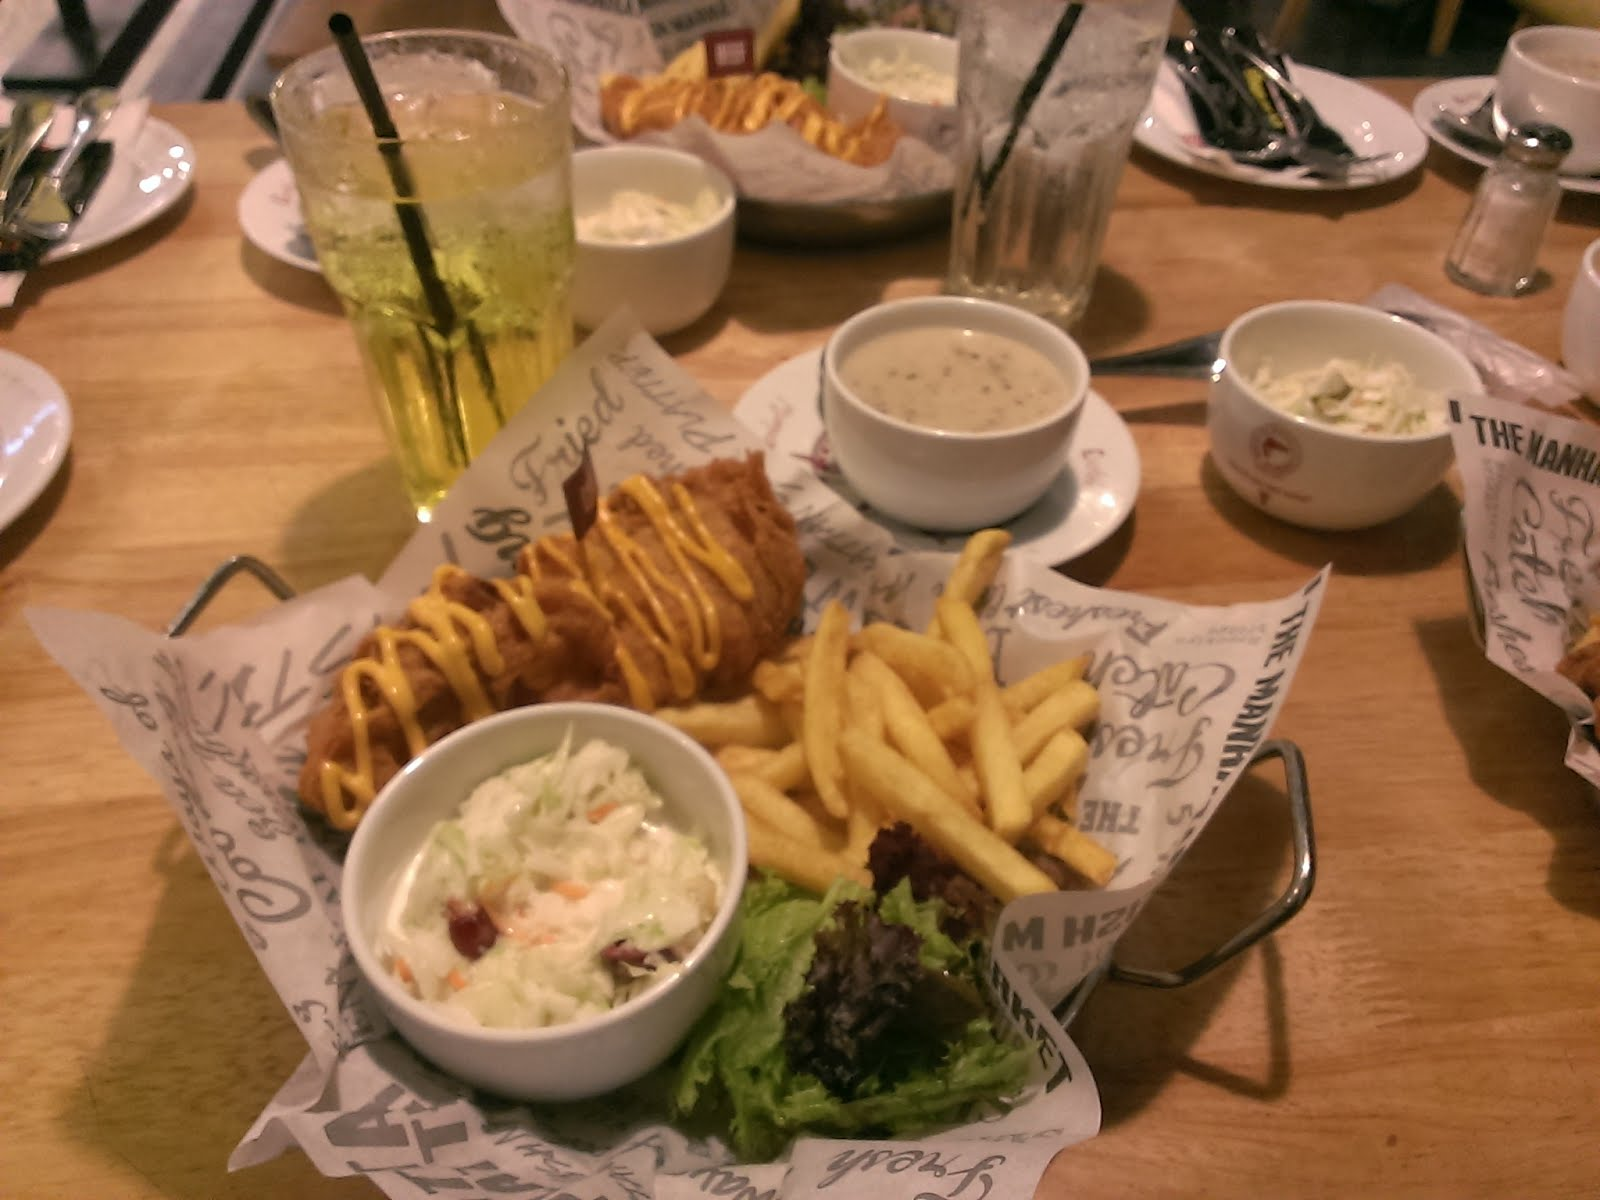 The Manhattan Fish Market - IOI City Mall, Putrajaya, Selangor